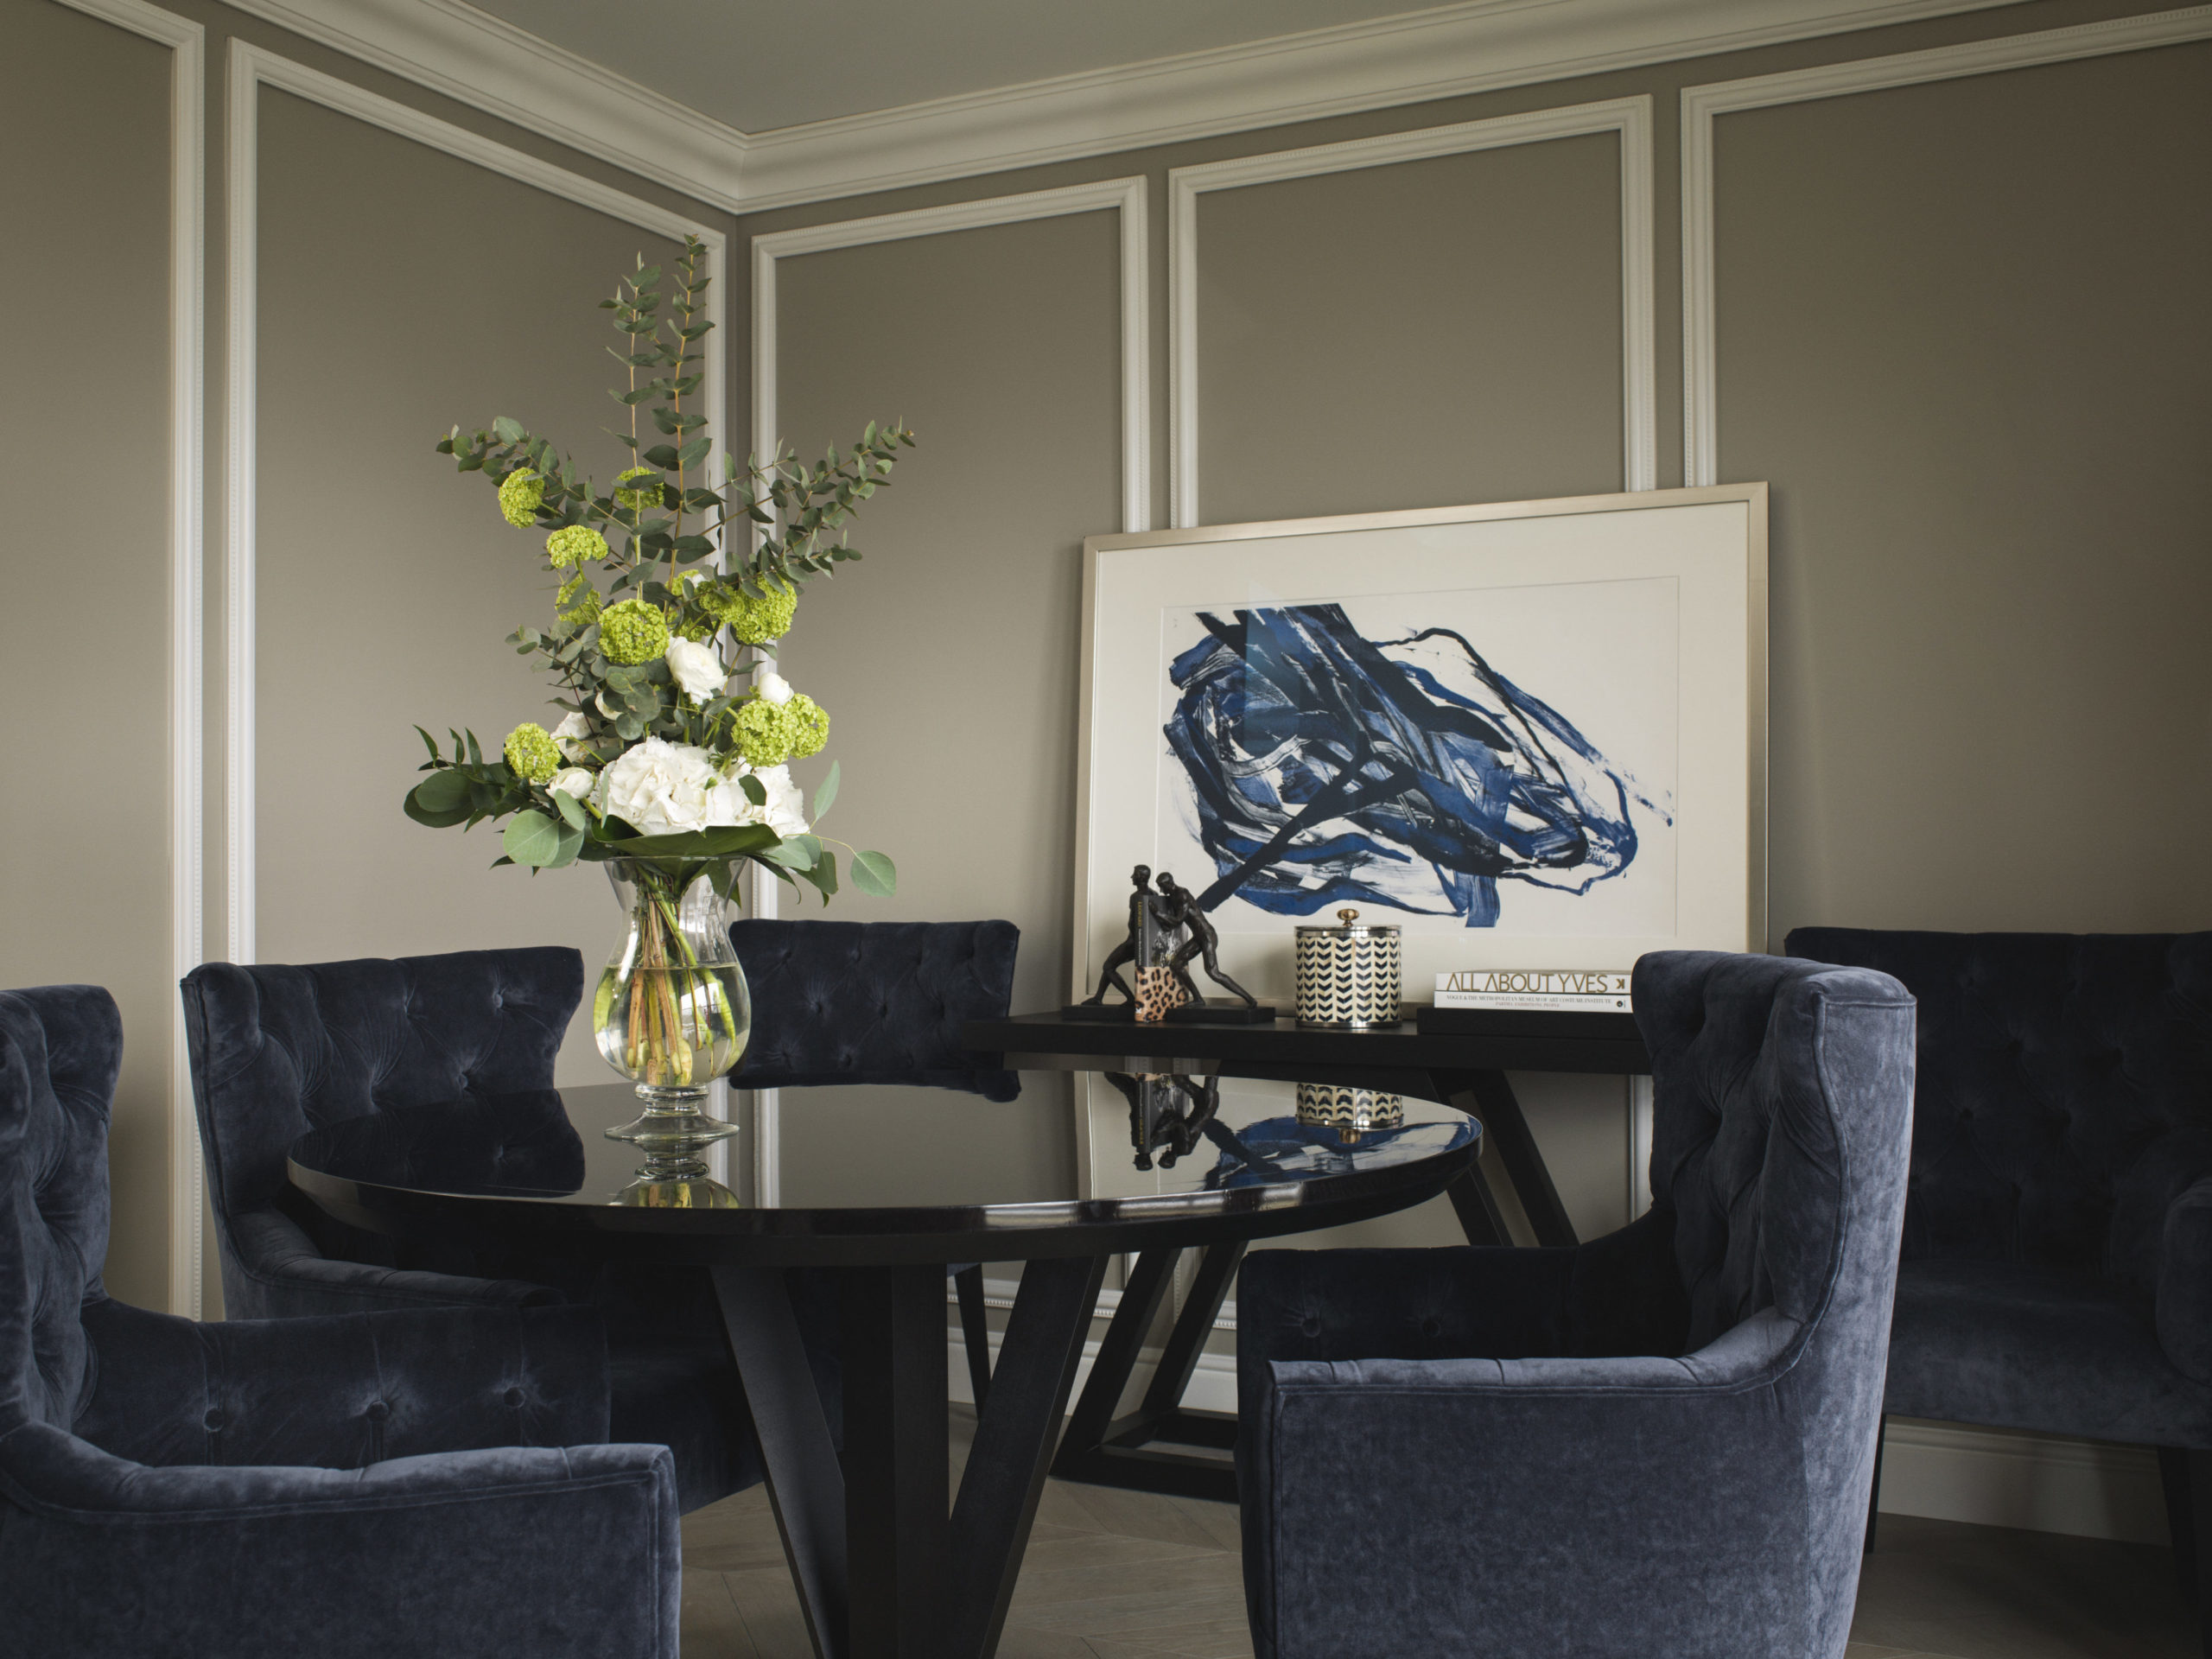 Britannia Hotel in Trondheim's Executive Suite styled by Metropolis Interior Architects. Dining area with flowers and artwork.